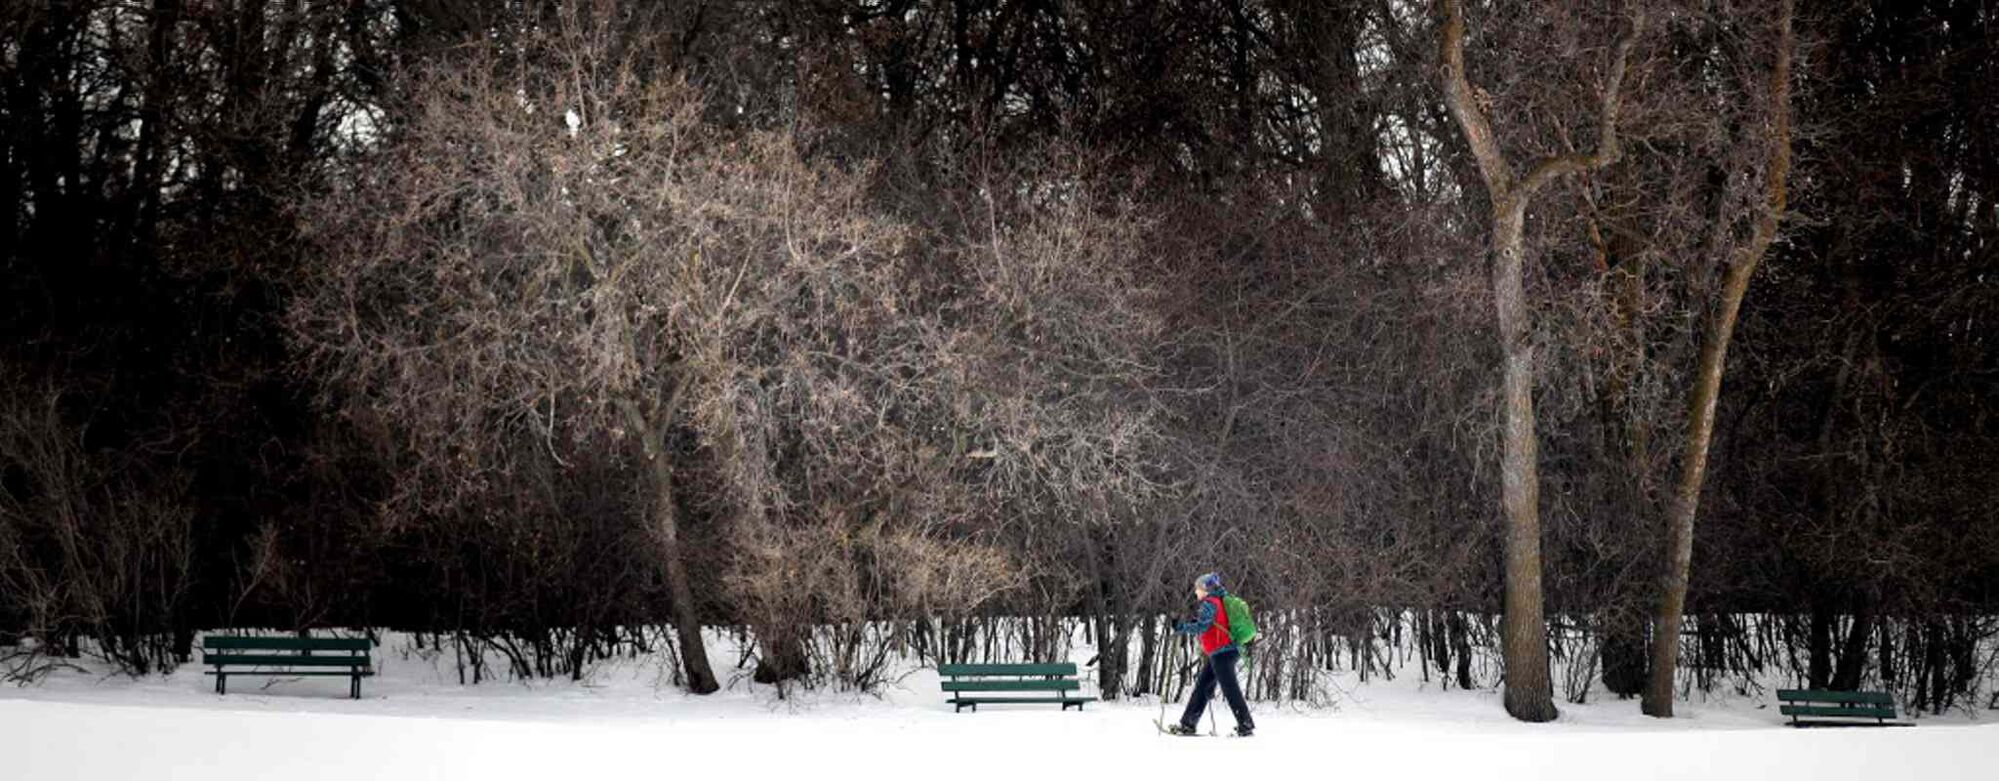 A snow show enthusiast makes the most of the lingering effects of winter walking past buried benches in the still deep snow covering the city. Things were a little frosty this morning when Randy and Joe set off on their search for Spring.  (Phil Hossack / Winnipeg Free Press)